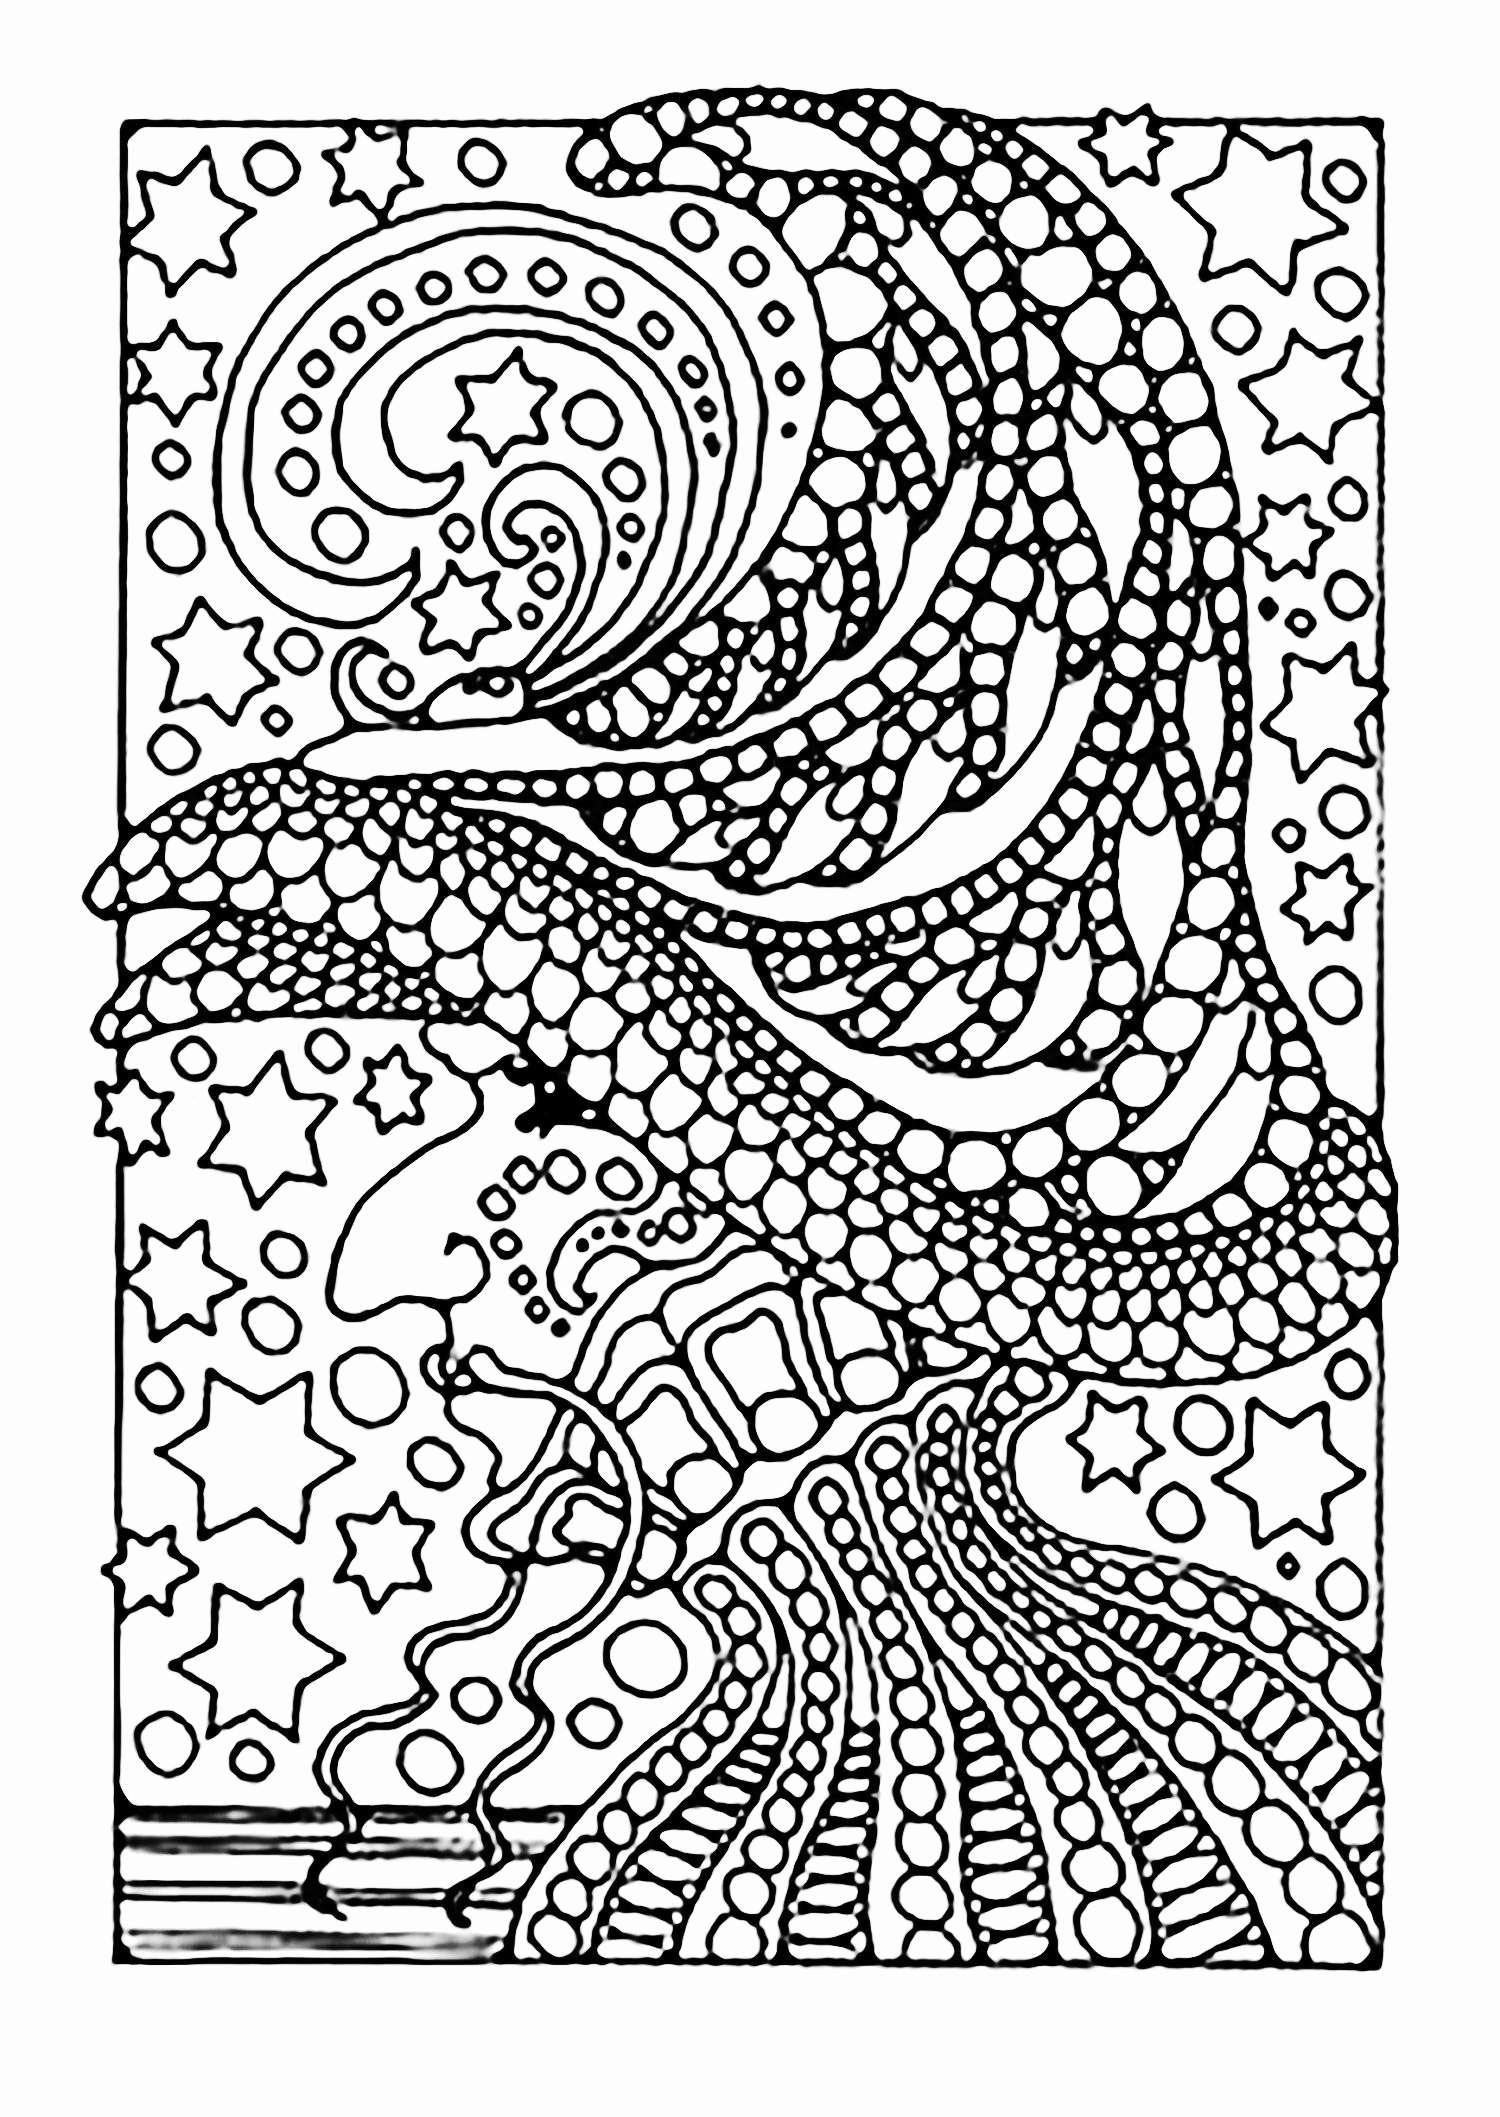 Christmas Dragon Coloring Pages With Dragons Download Thephotosync Com